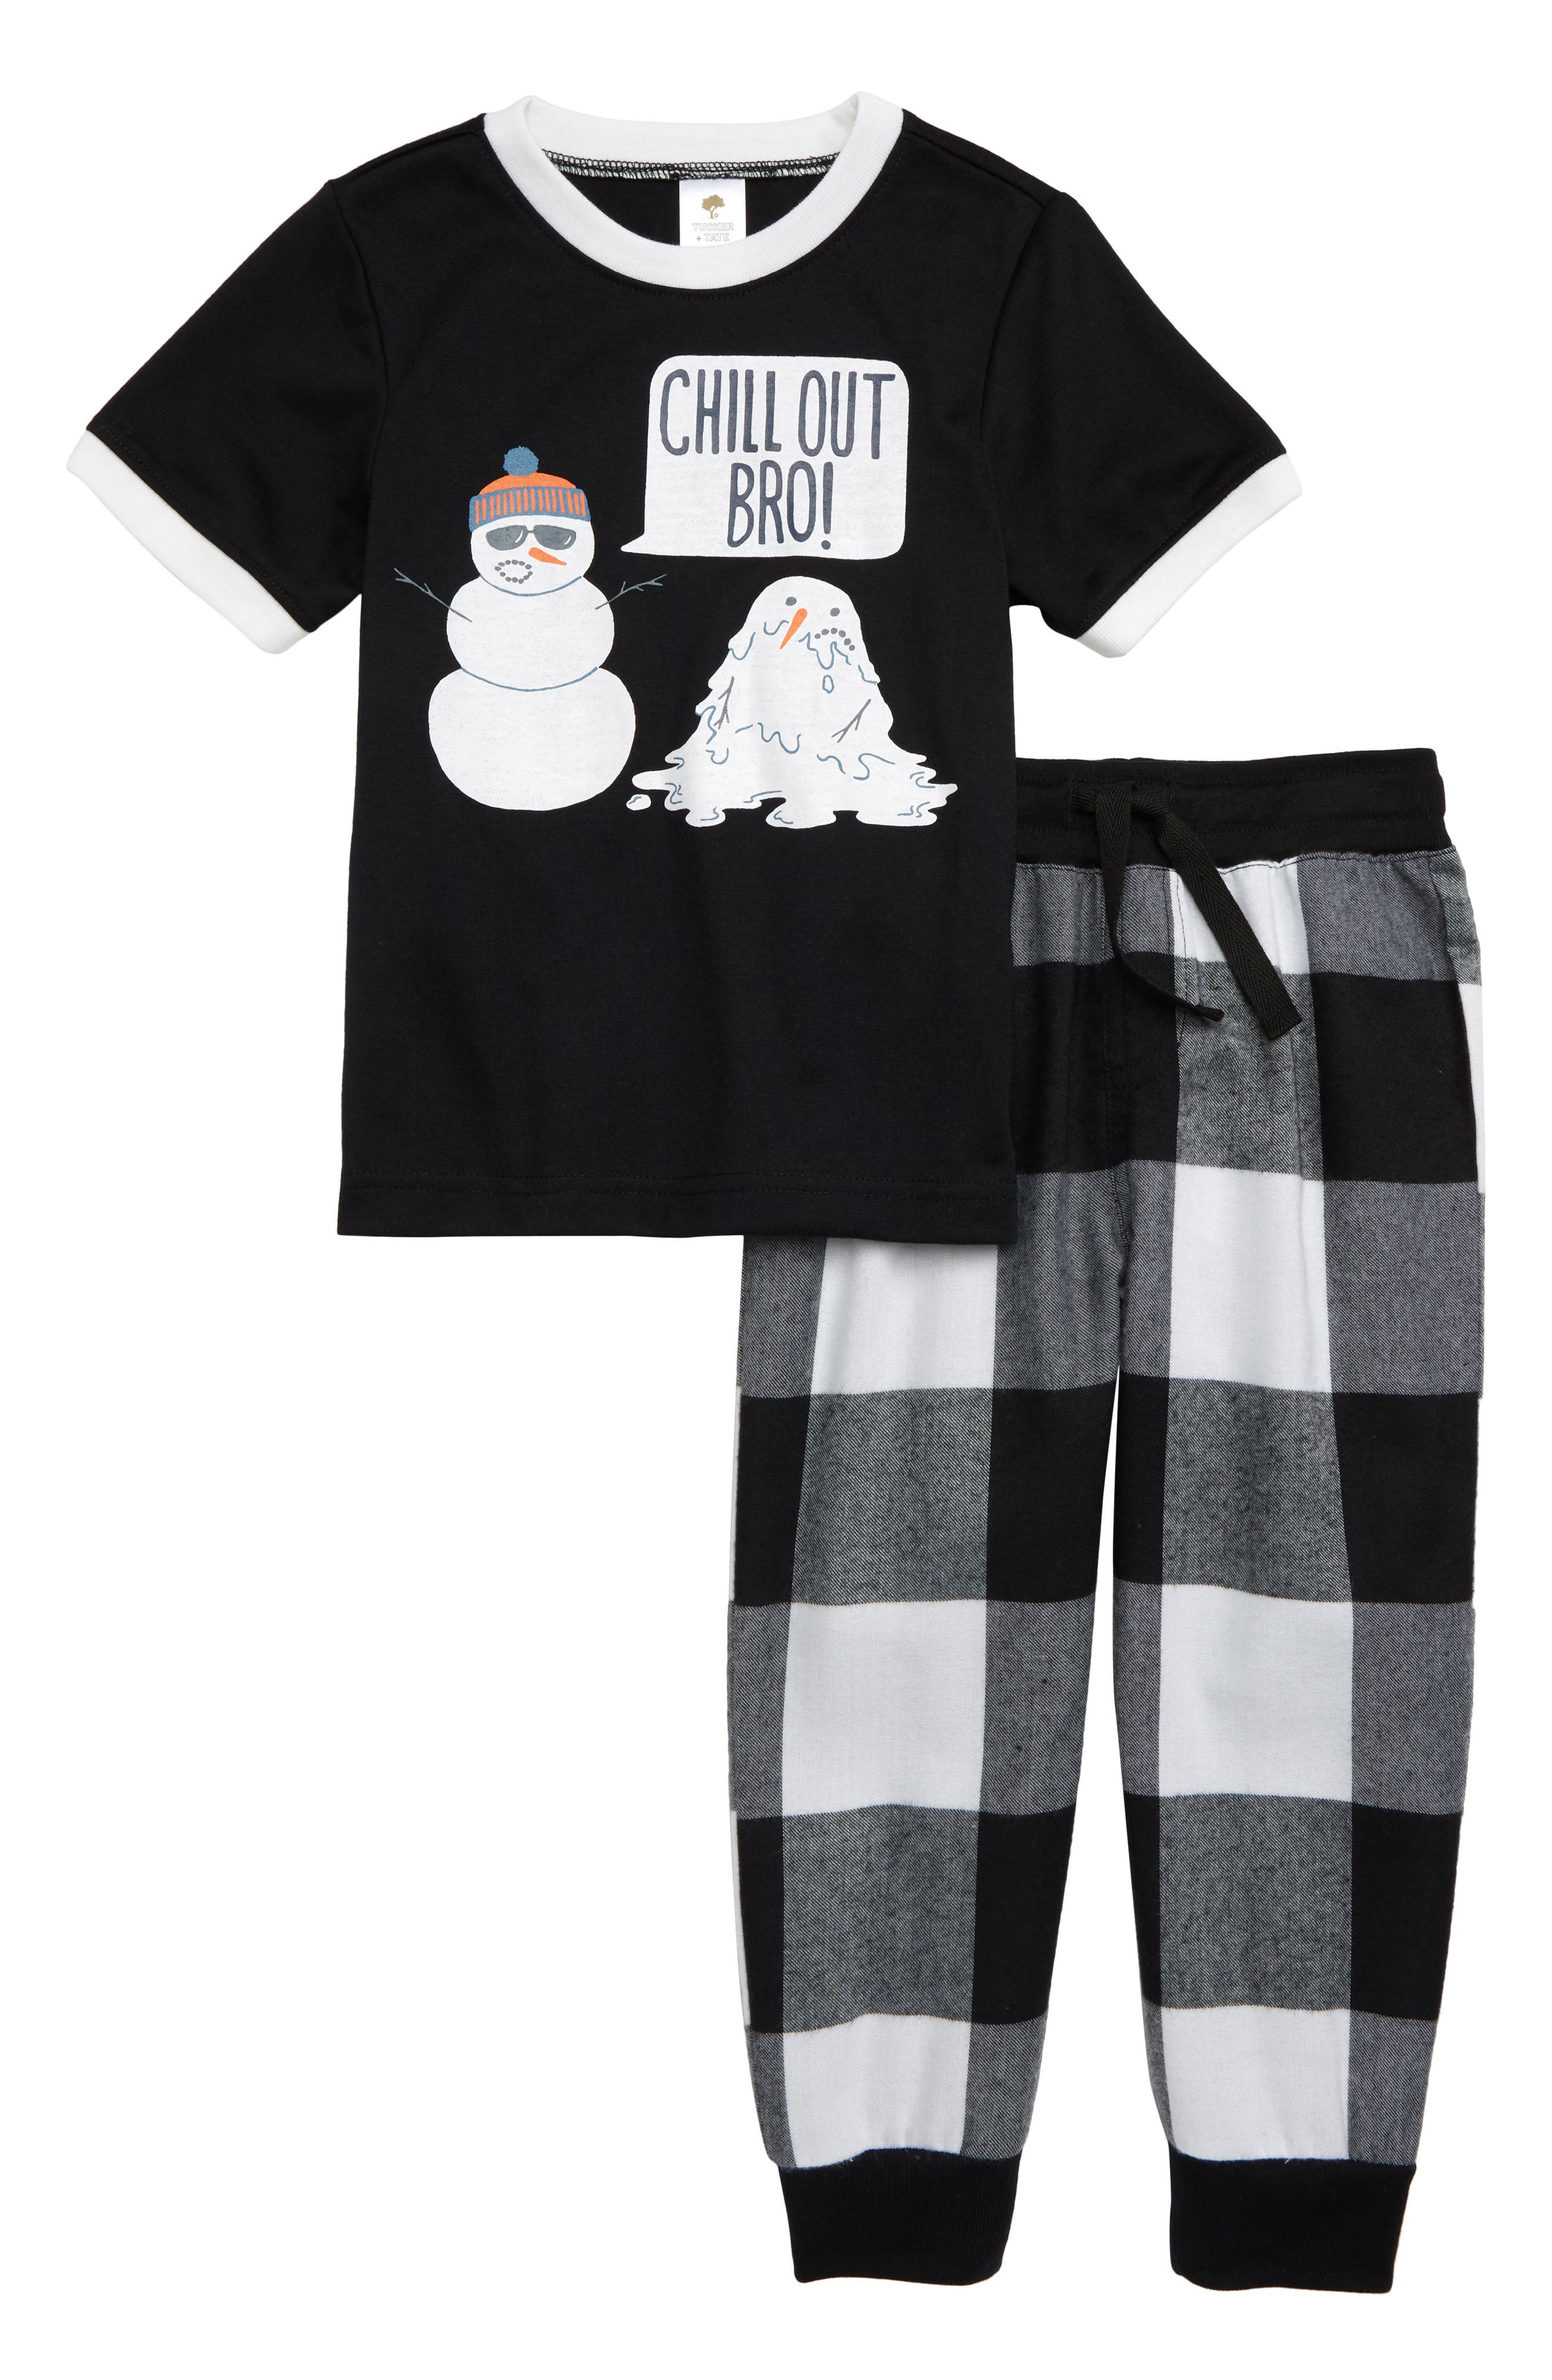 TUCKER + TATE, Graphic Two-Piece Pajamas Set, Main thumbnail 1, color, BLACK CHILL OUT